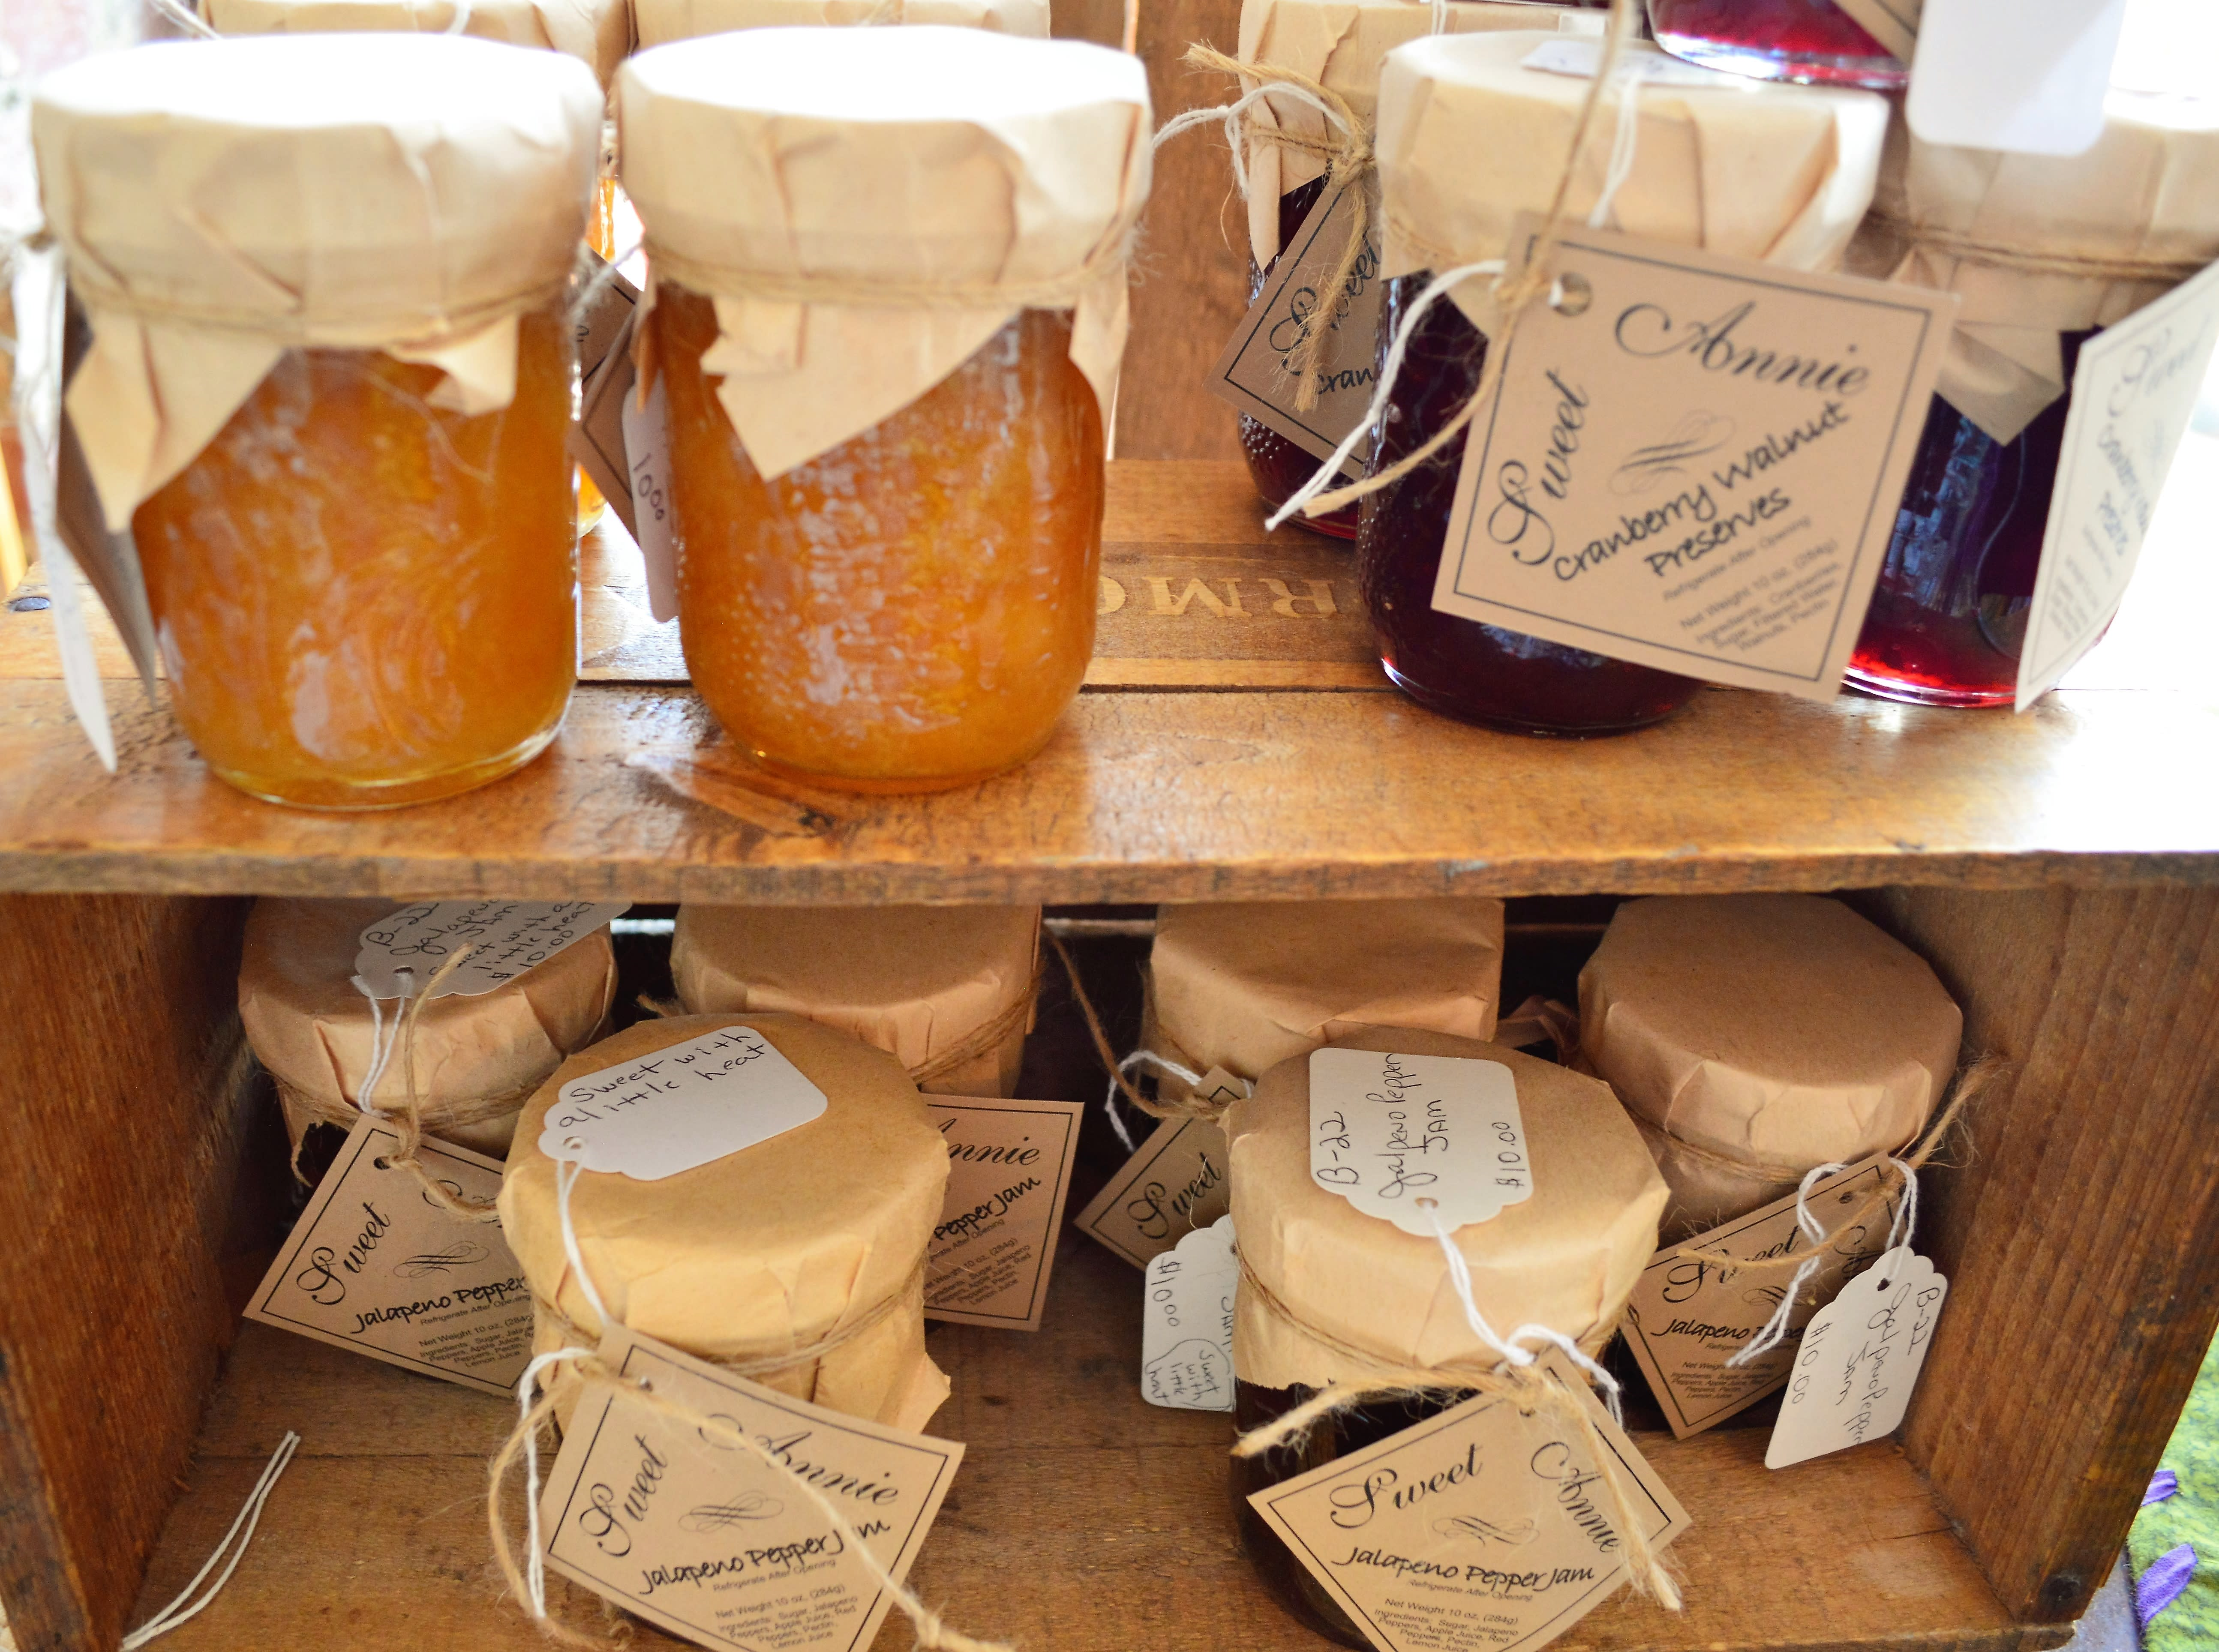 sugar-maples-antiques-jams-and-jellies